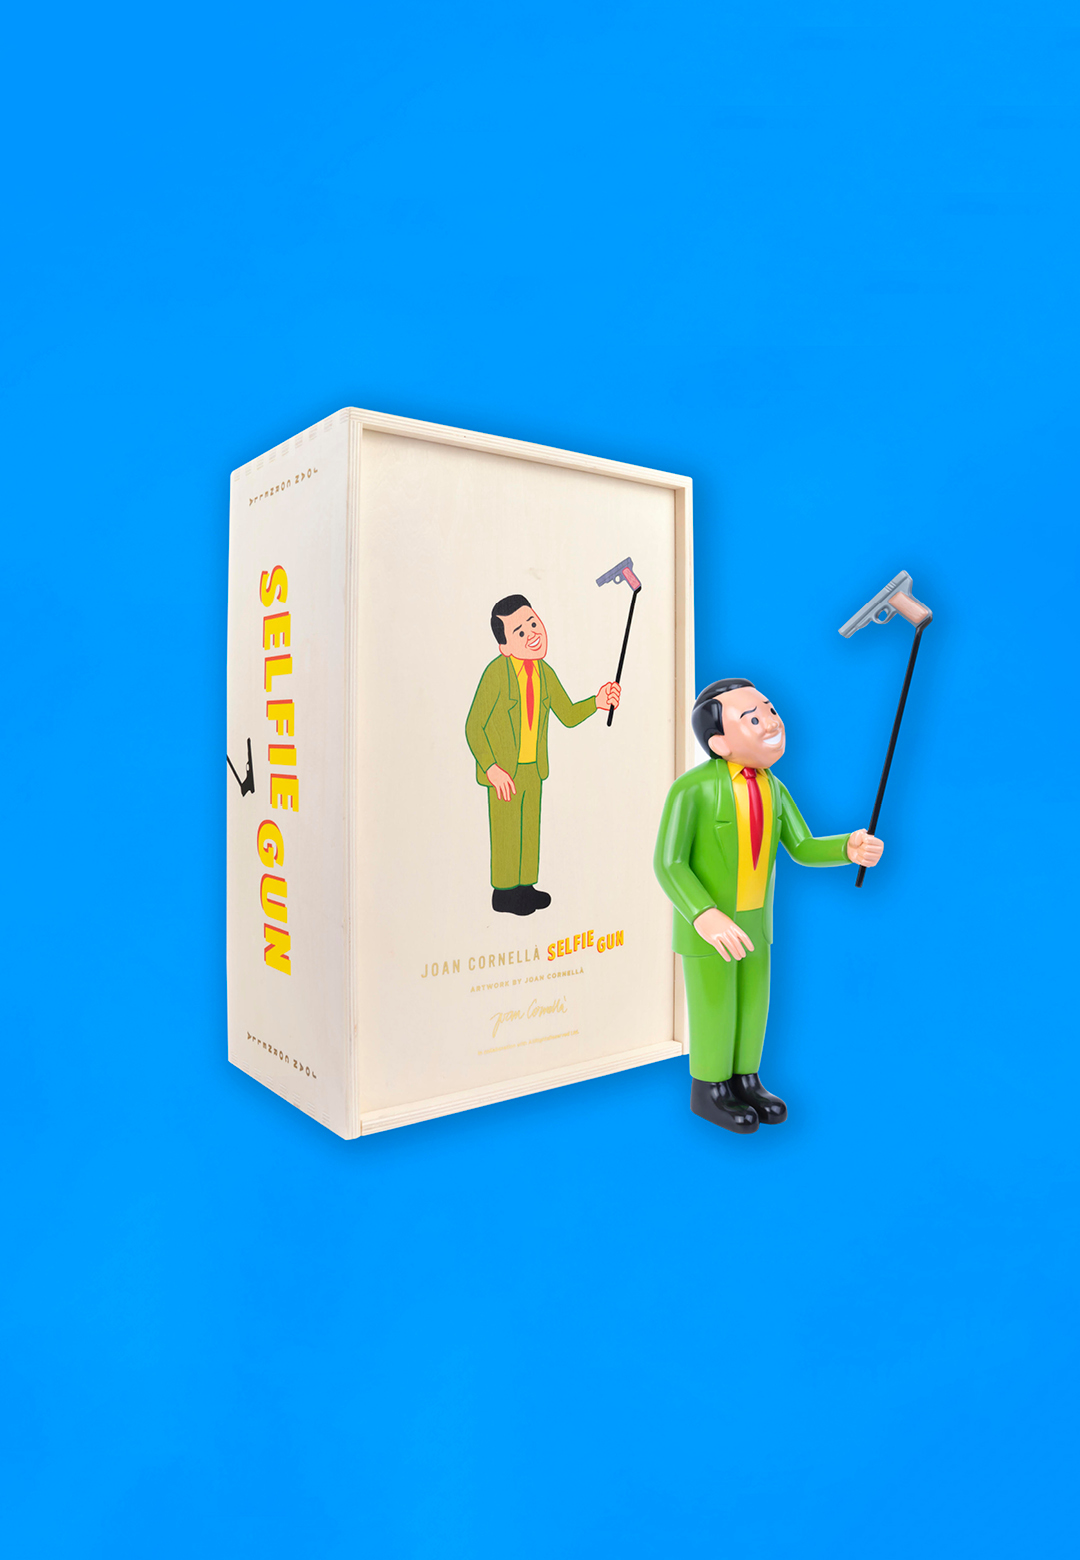 Bronze Sculpture of Selfie Gun | Selfie Gun| Joan Cornella? | STIRworld